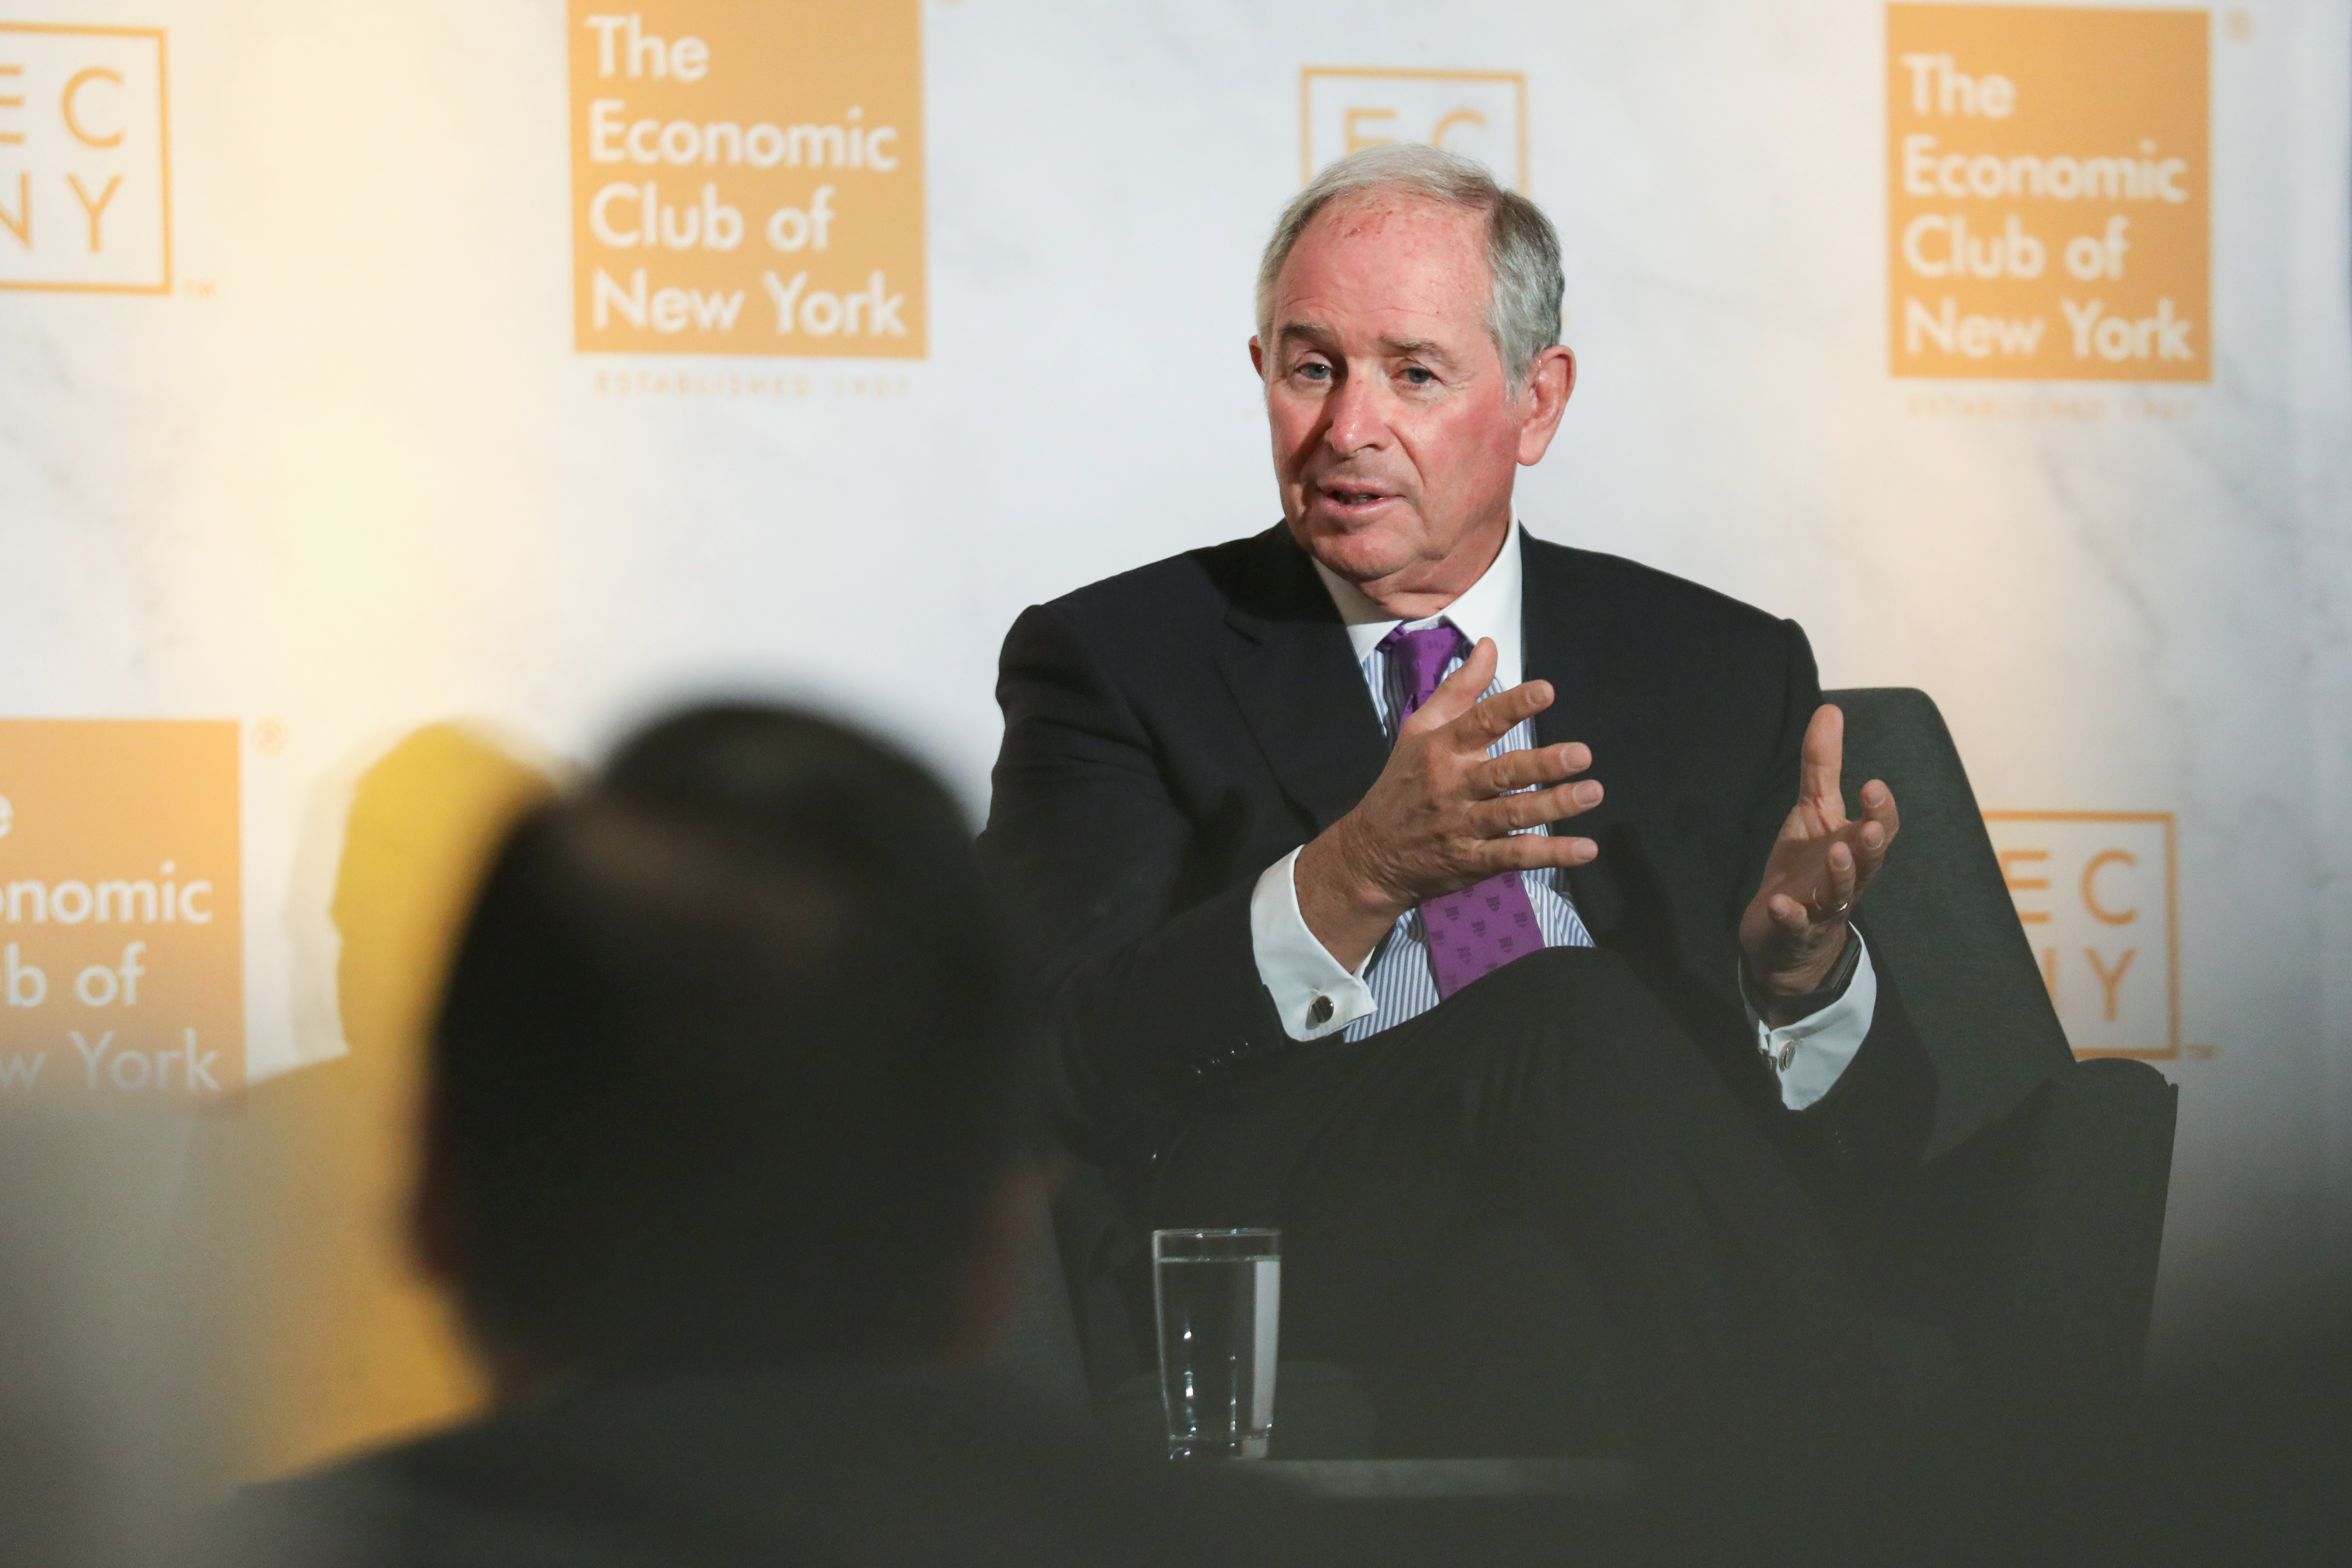 Stephen Schwarzman, co-founder and chief executive officer of Blackstone Group Inc., speaks during an event at the Economic Club of New York in New York, U.S., on Wednesday, Sept. 18, 2019.